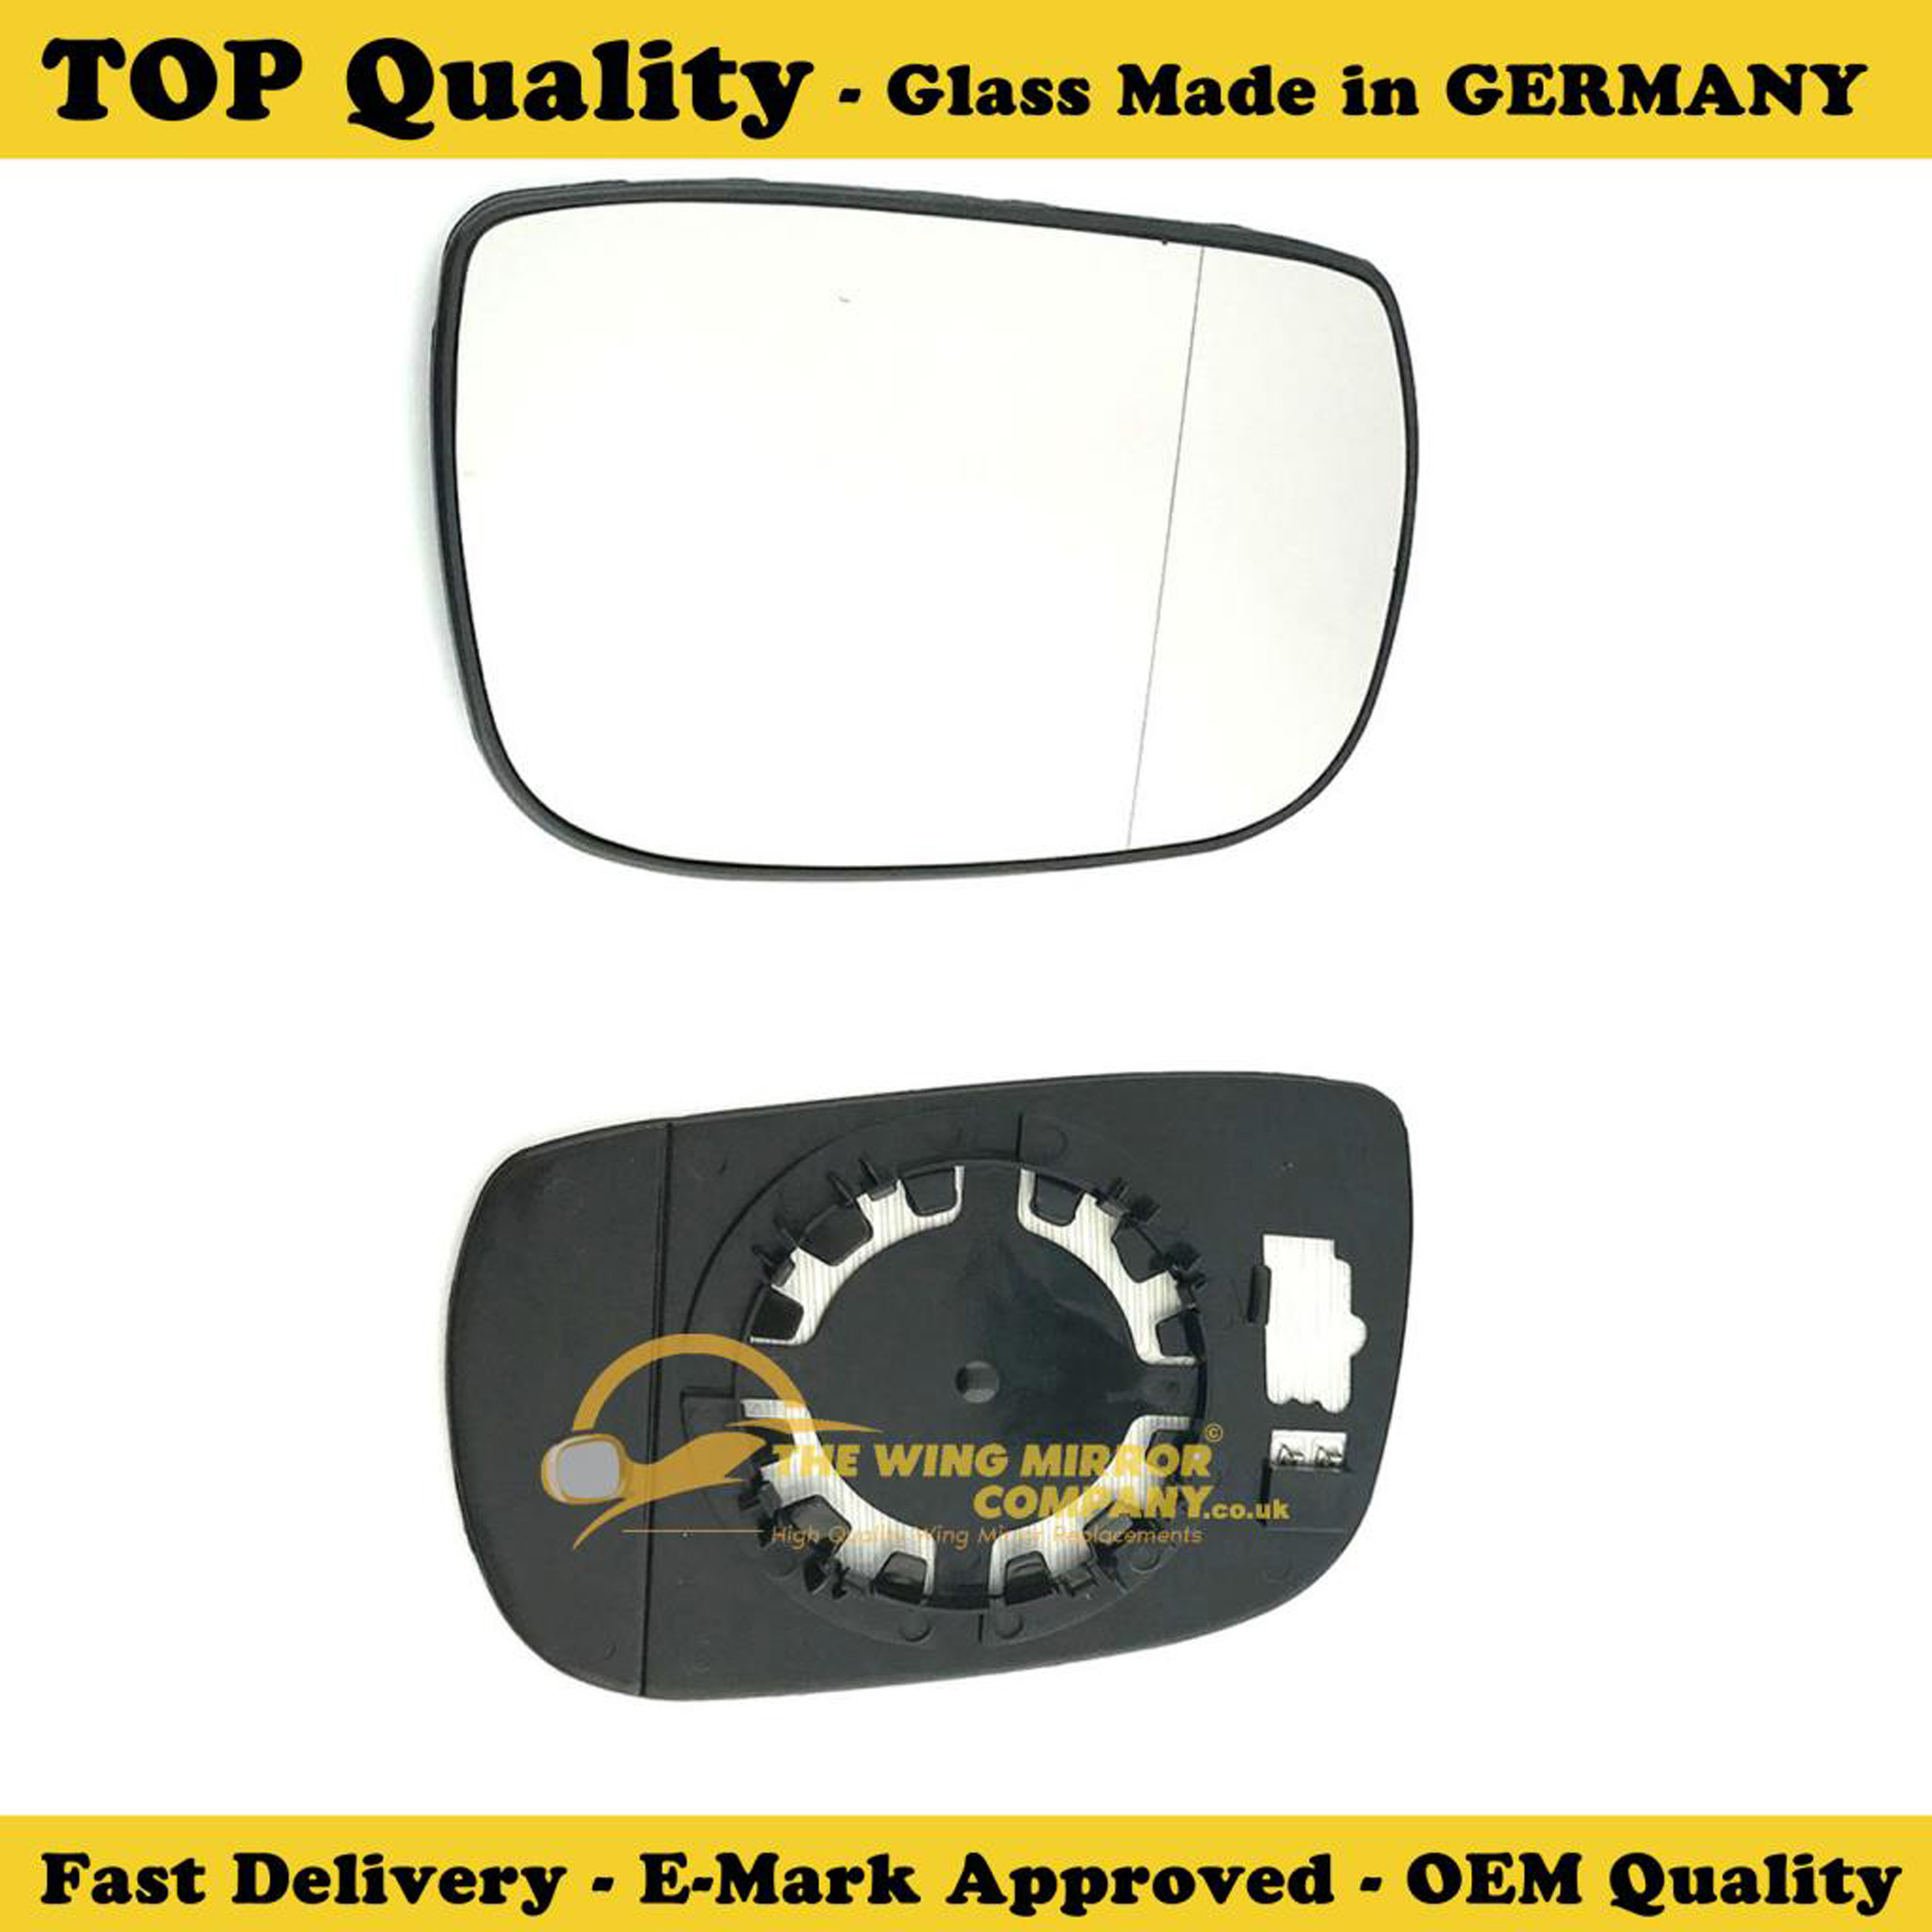 VAUXHALL AGILA WING MIRROR GLASS SILVER,NON HEATED /& BASE,RIGHT SIDE,2000-/>2008